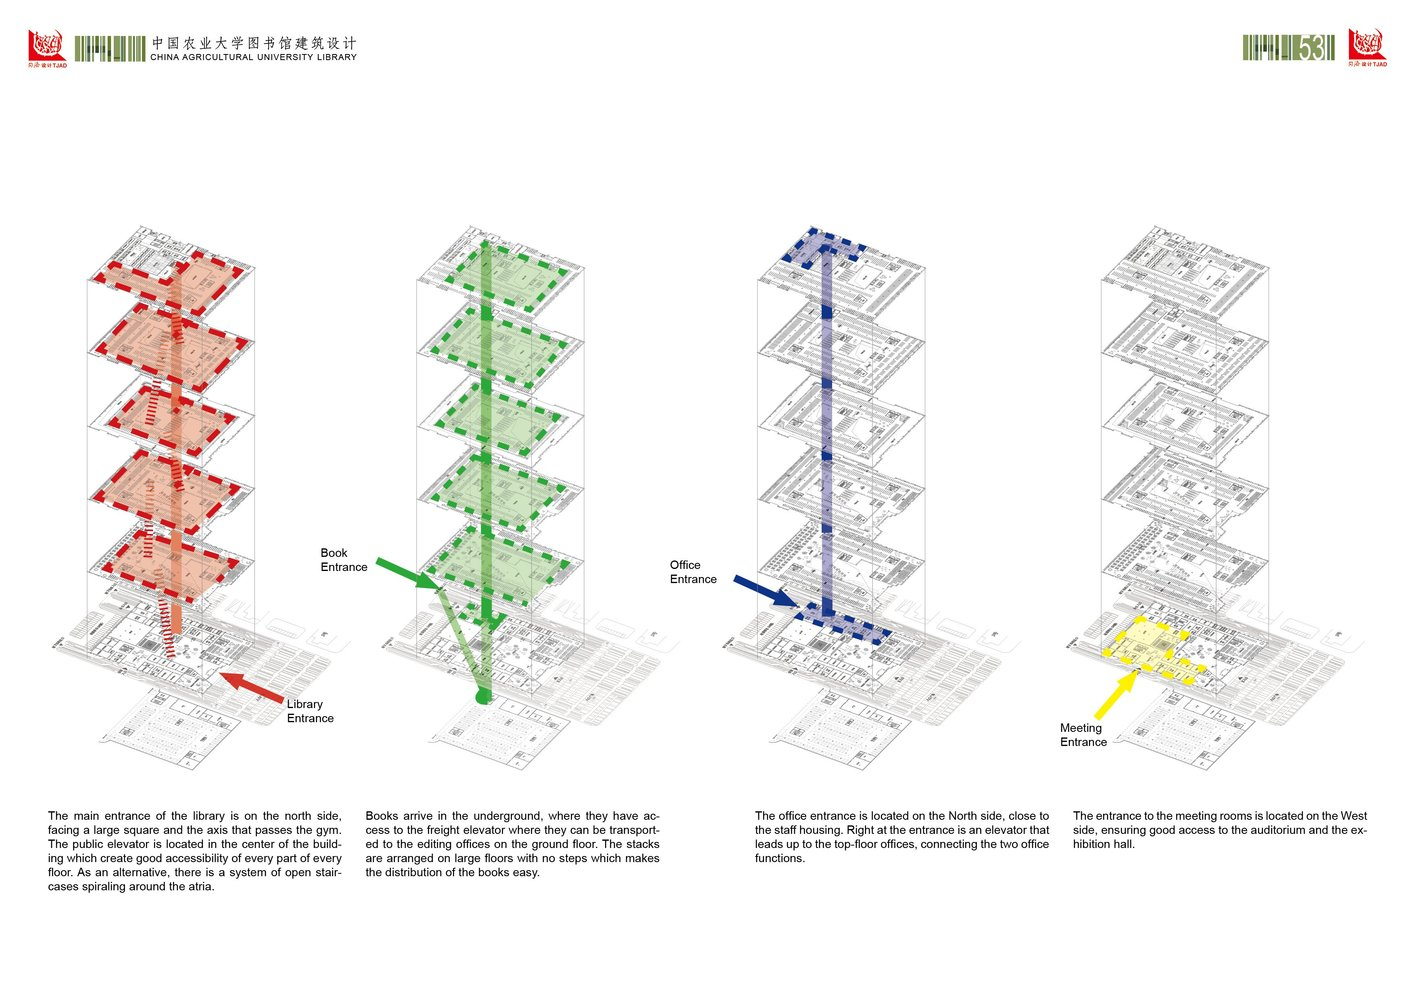 Gallery of beijing agriculture university library winning proposal beijing agriculture university library winning proposal tongji architectural design and research institutecirculation diagrams ccuart Gallery